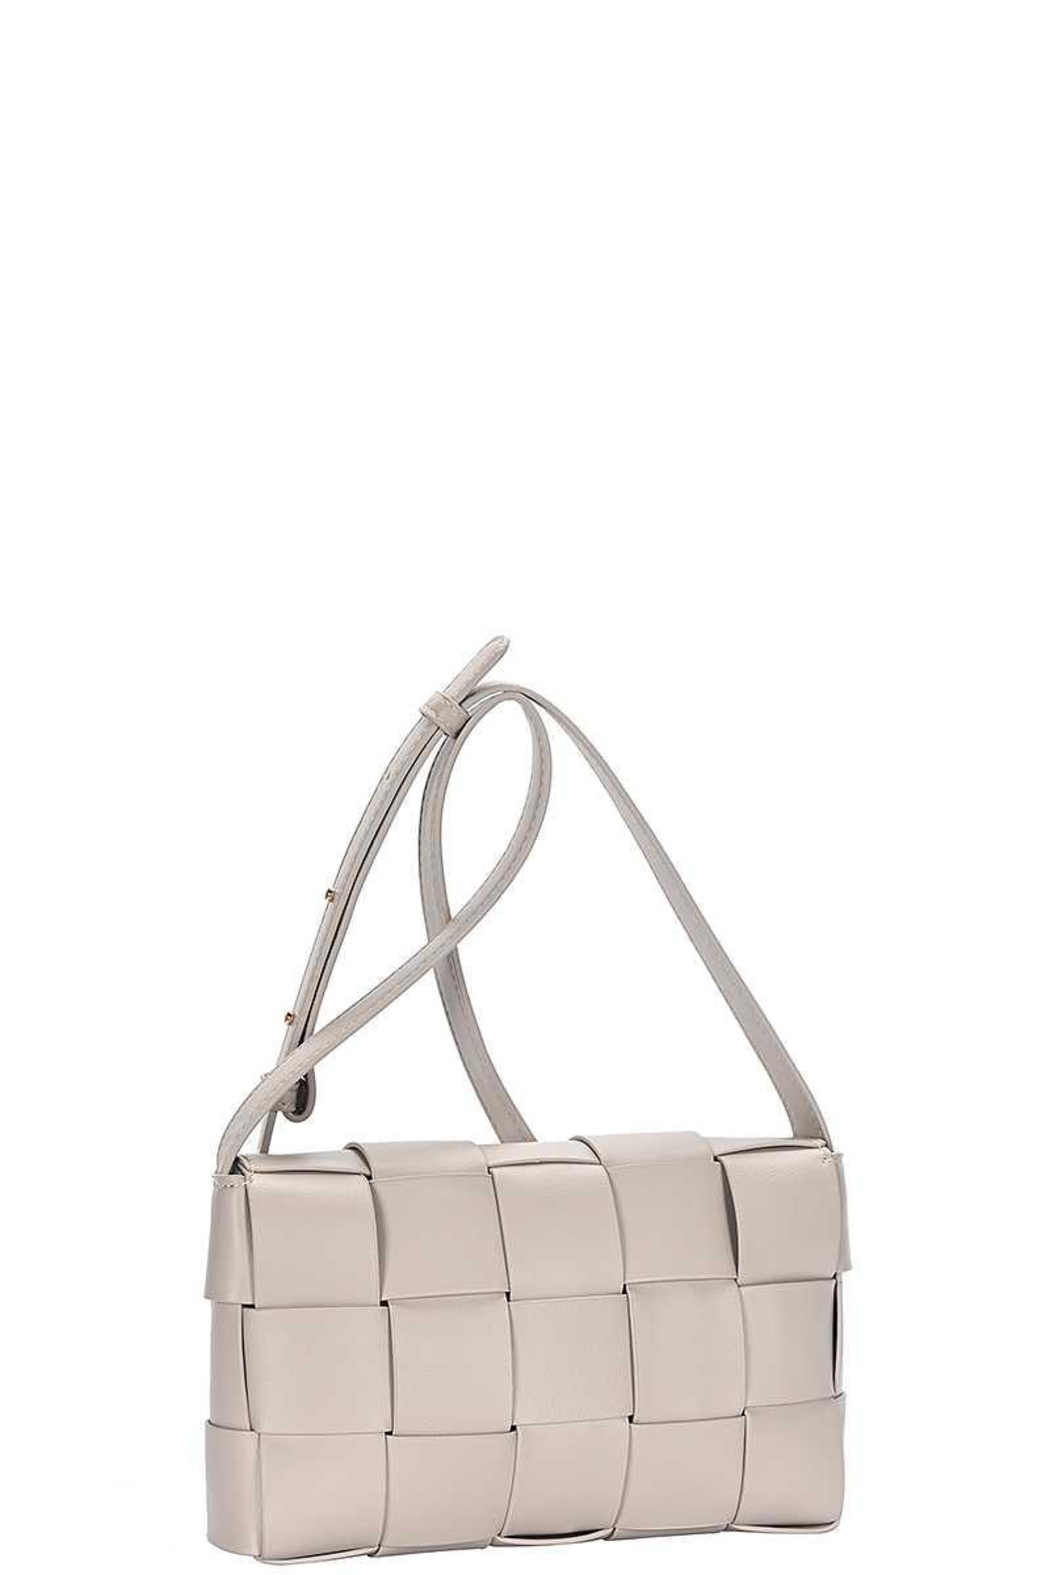 Nadya's Closet Smooth Boxed Checker Design Crossbody Bag - Front Cropped Image